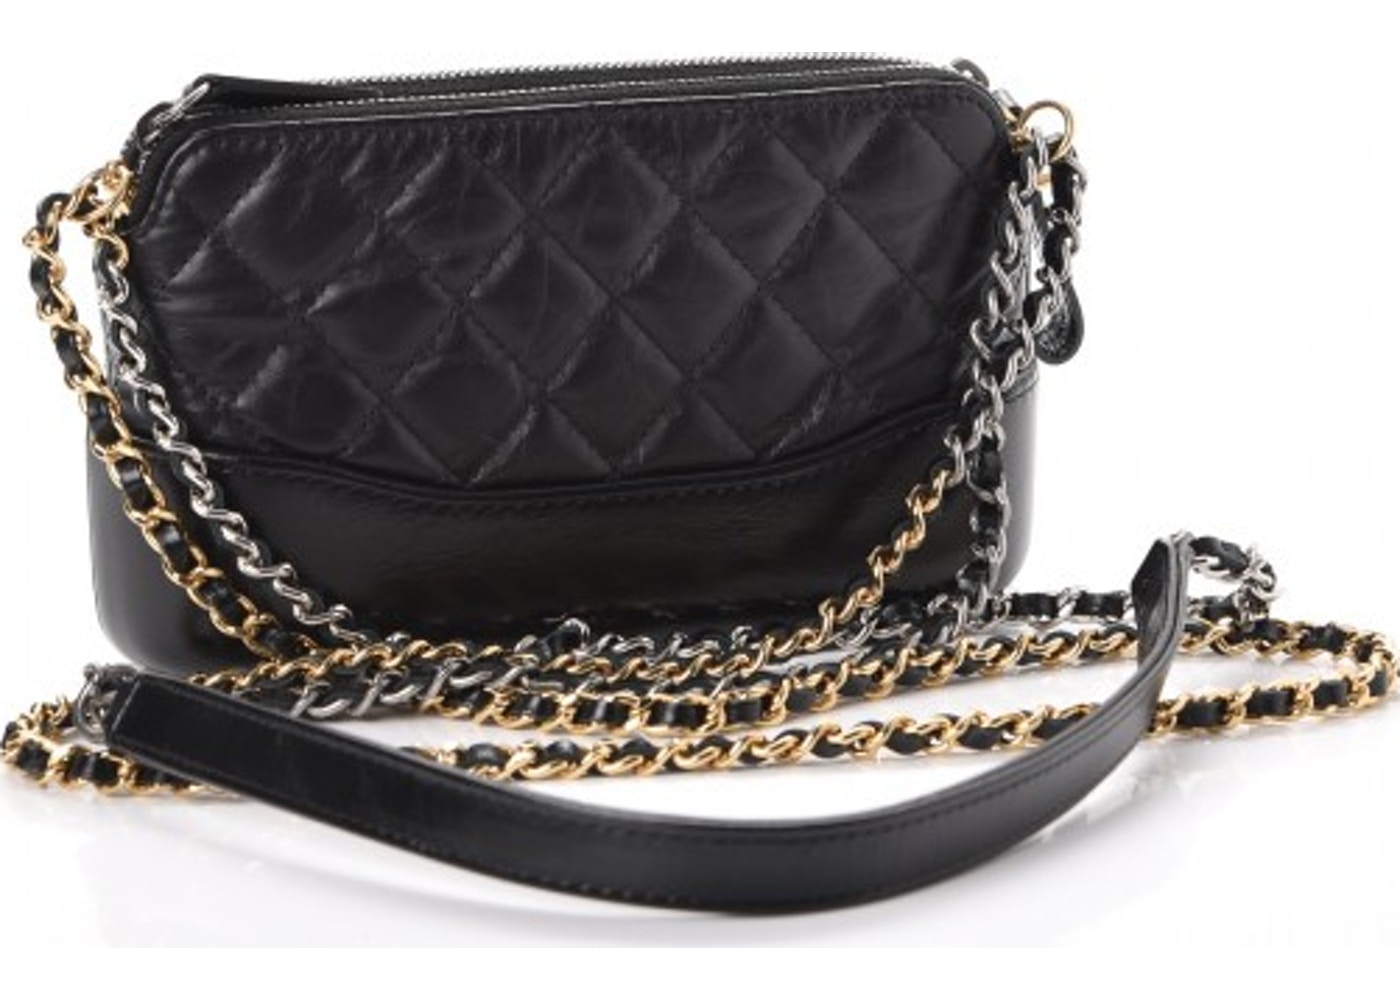 6bcb4ea351ee Chanel Gabrielle Clutch With Chain Quilted Diamond Small Black